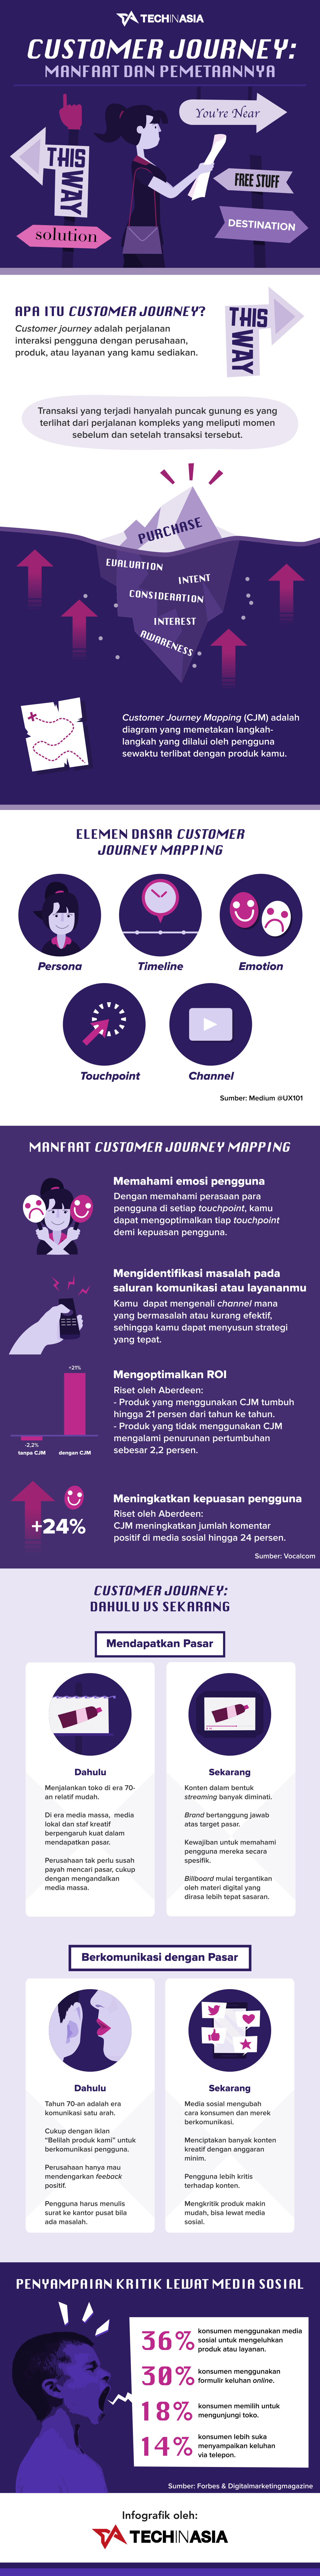 Customer Journey Map | Infographic